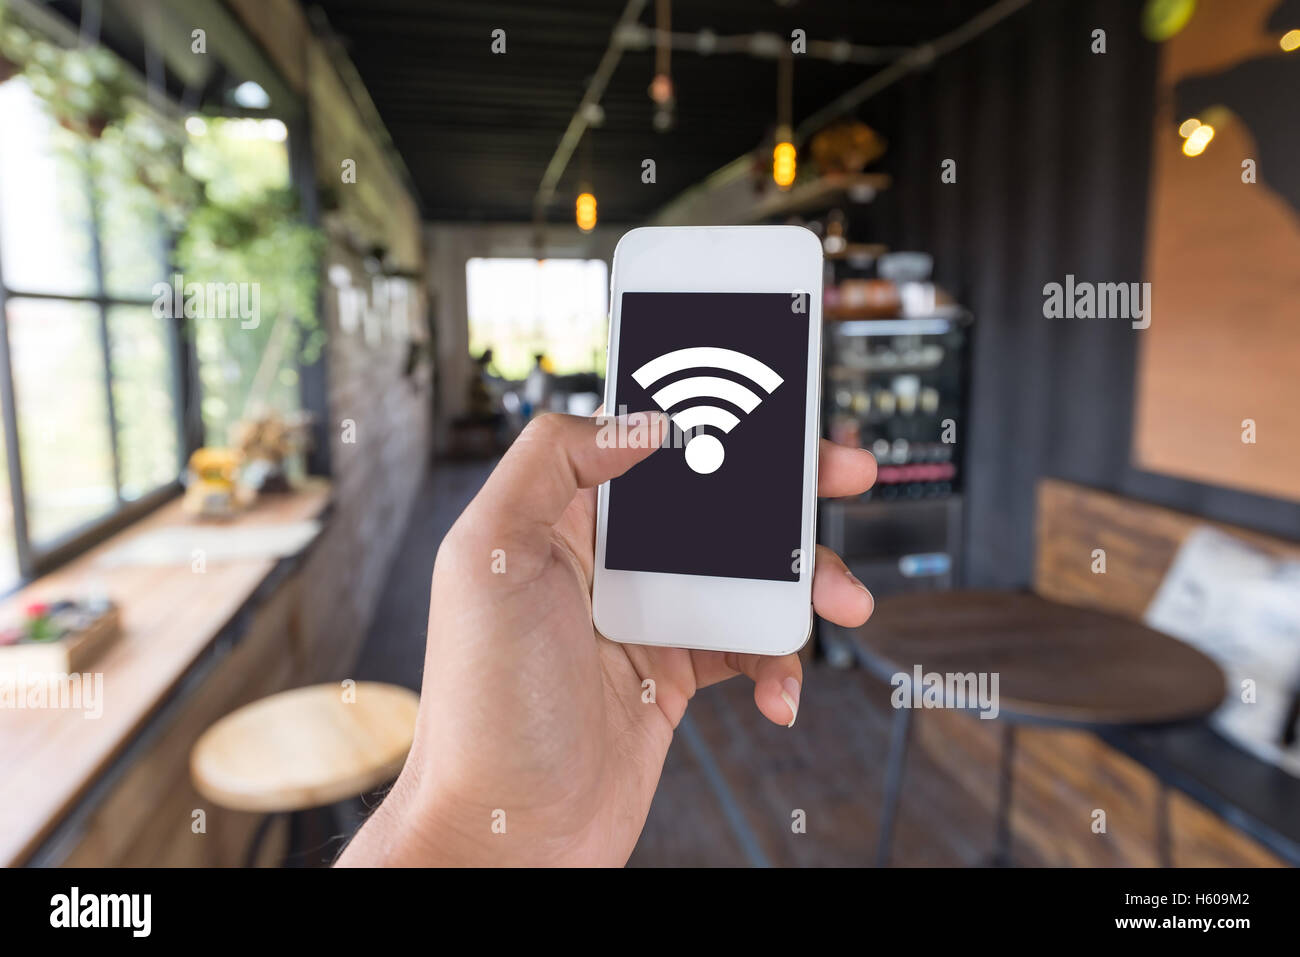 Hand using Smart phone in coffee shop. in coffee shop have free wifi for customer be can using connect social network - Stock Image